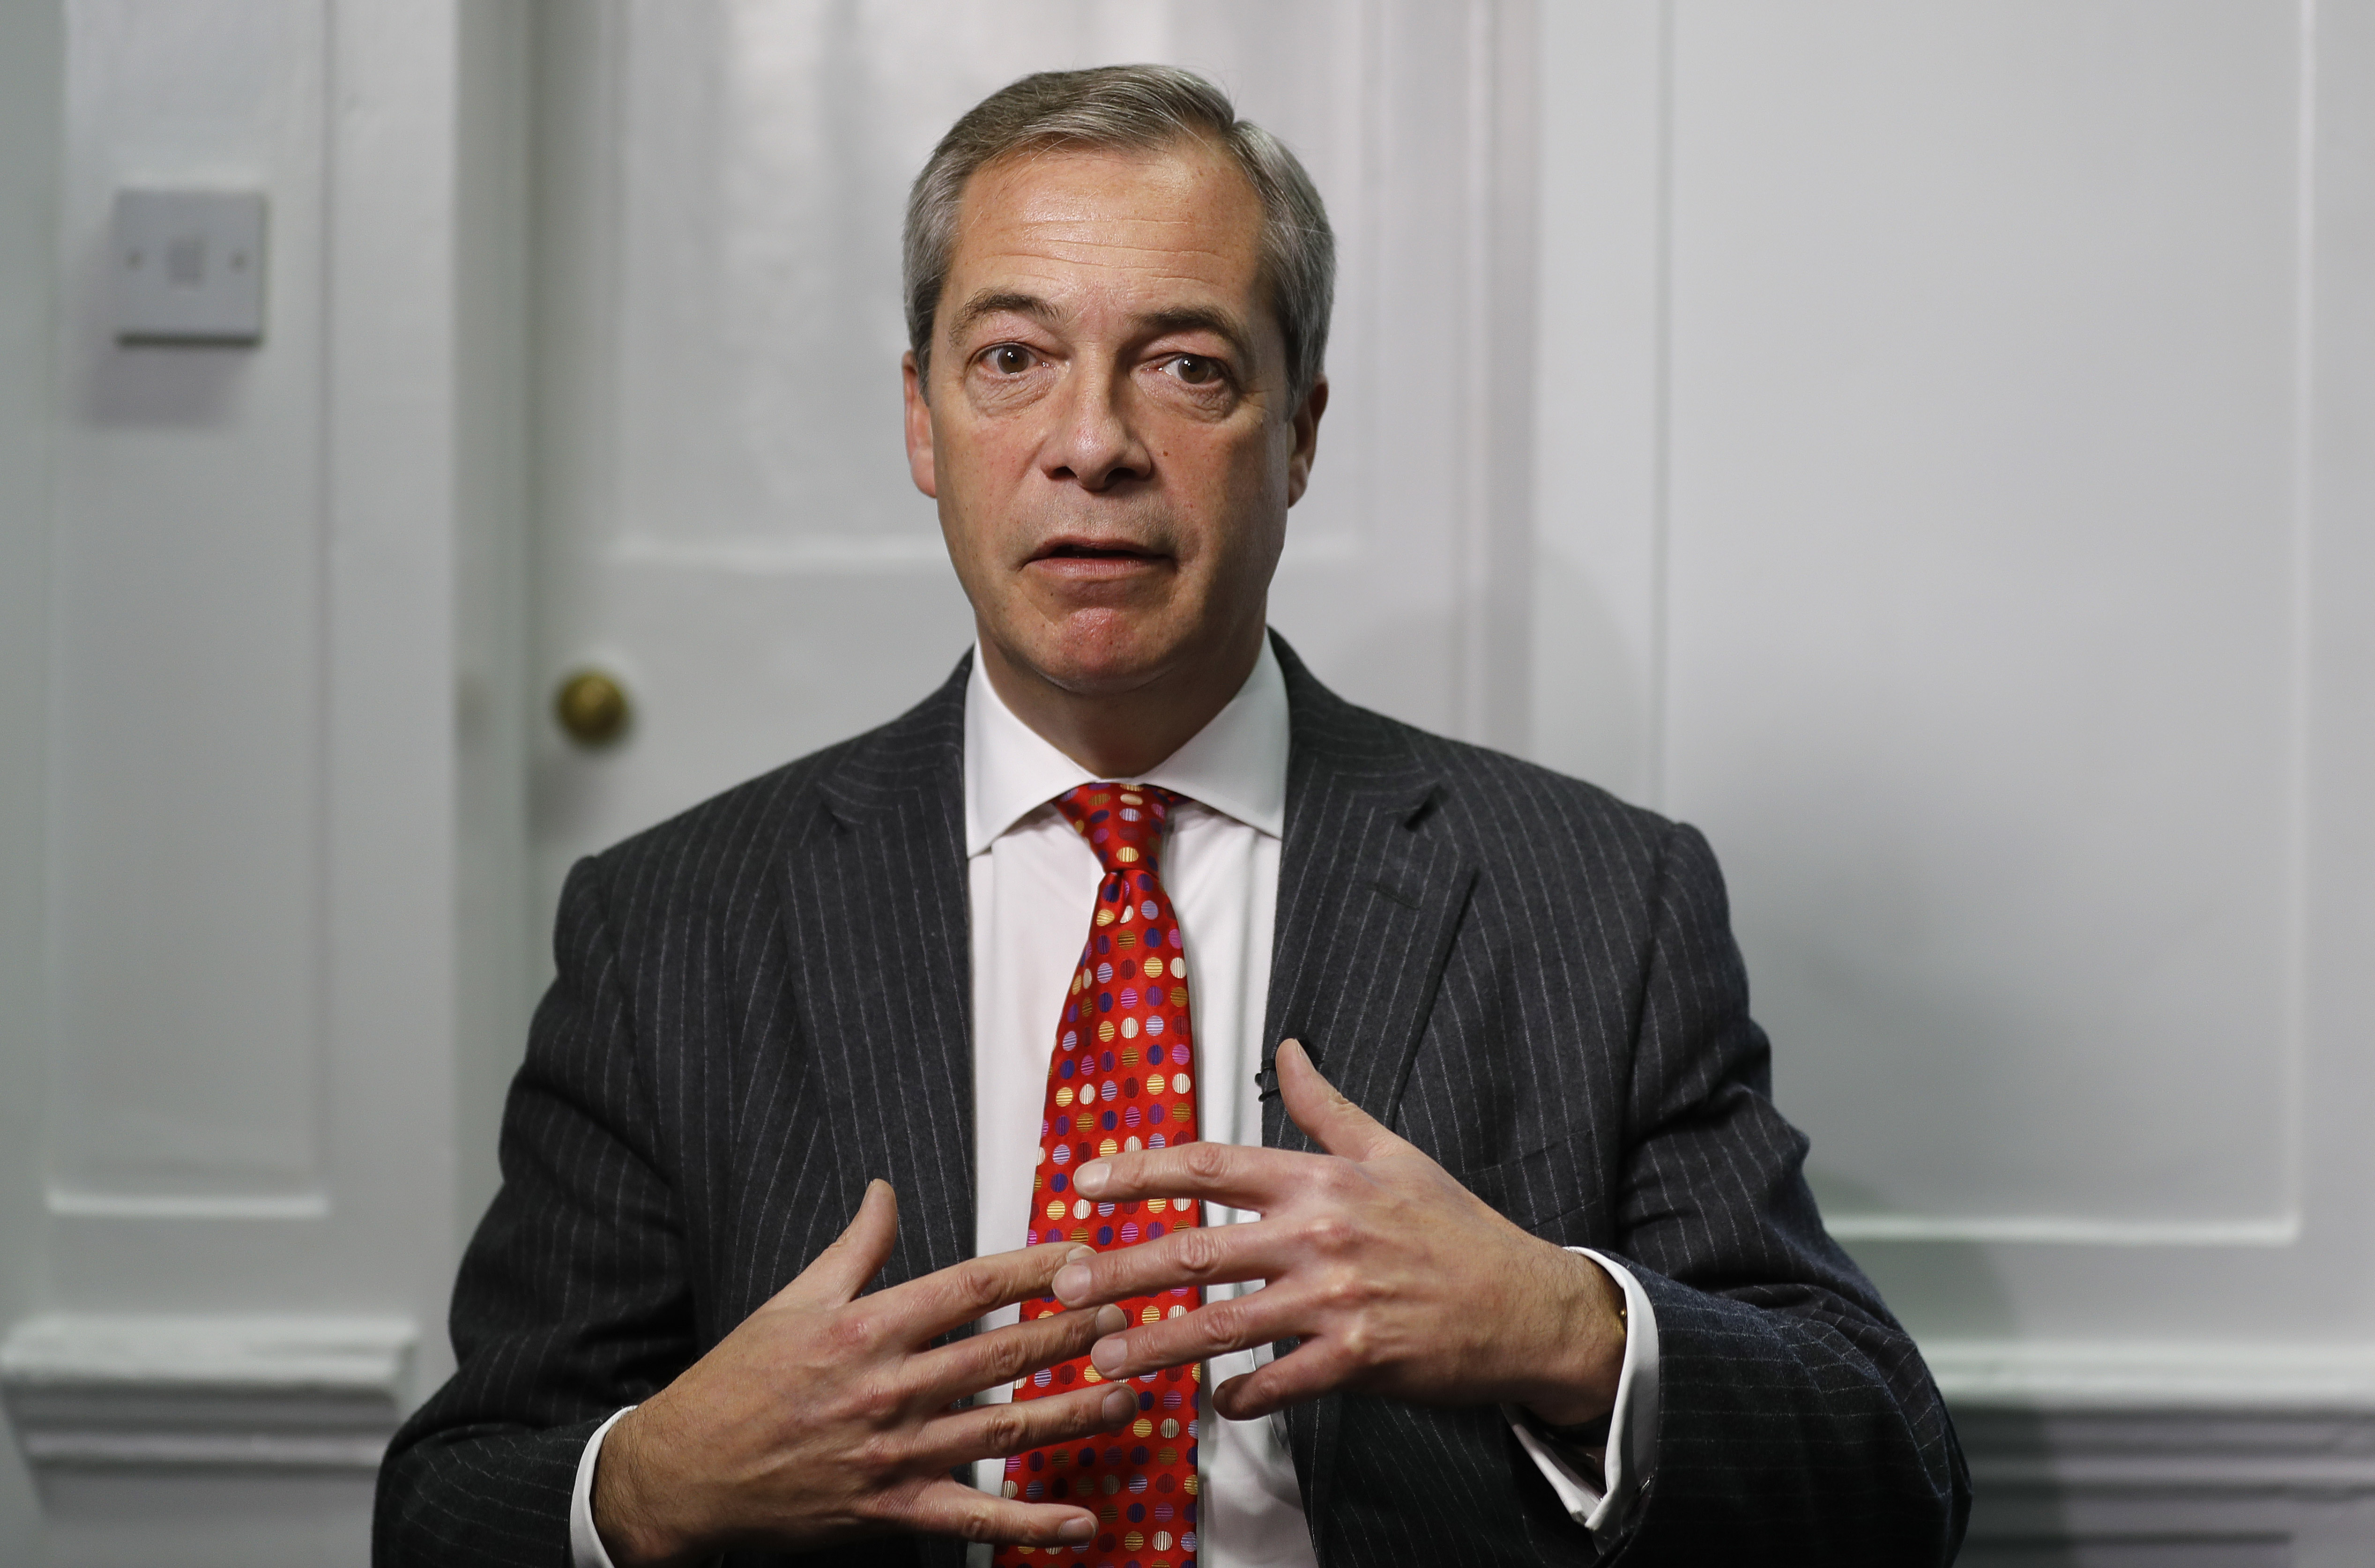 Former UK Independence Party (UKIP) leader Nigel Farage gestures during an interview with The Associated Press in London, Nov. 29, 2016.